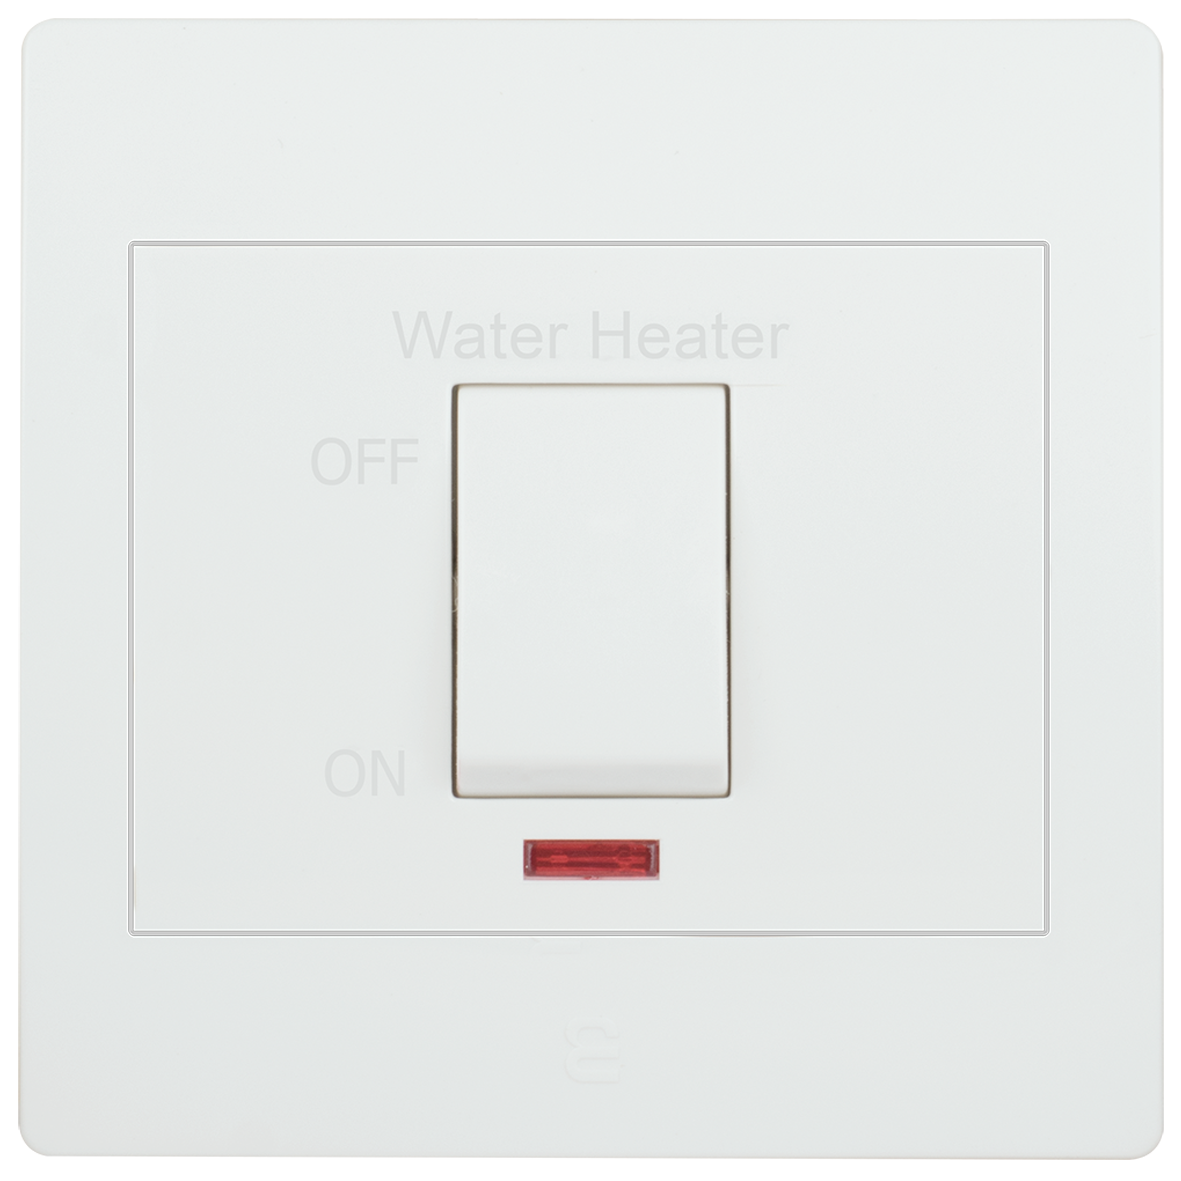 Double Pole Water Heater Switch